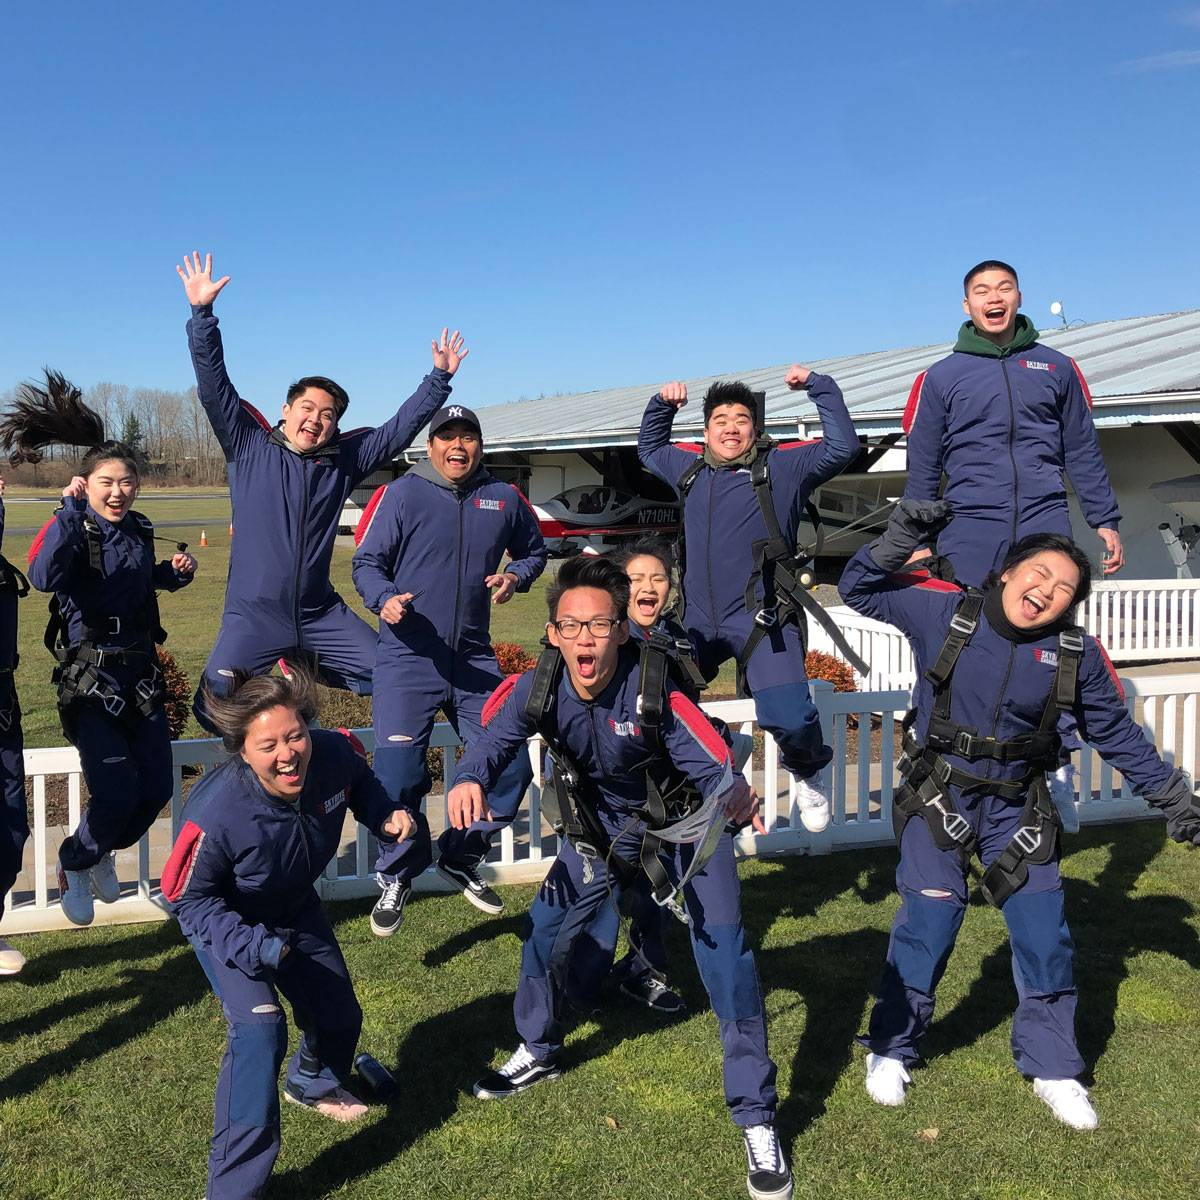 Eleven tandem skydivers jumping in the air excited to go skydiving.